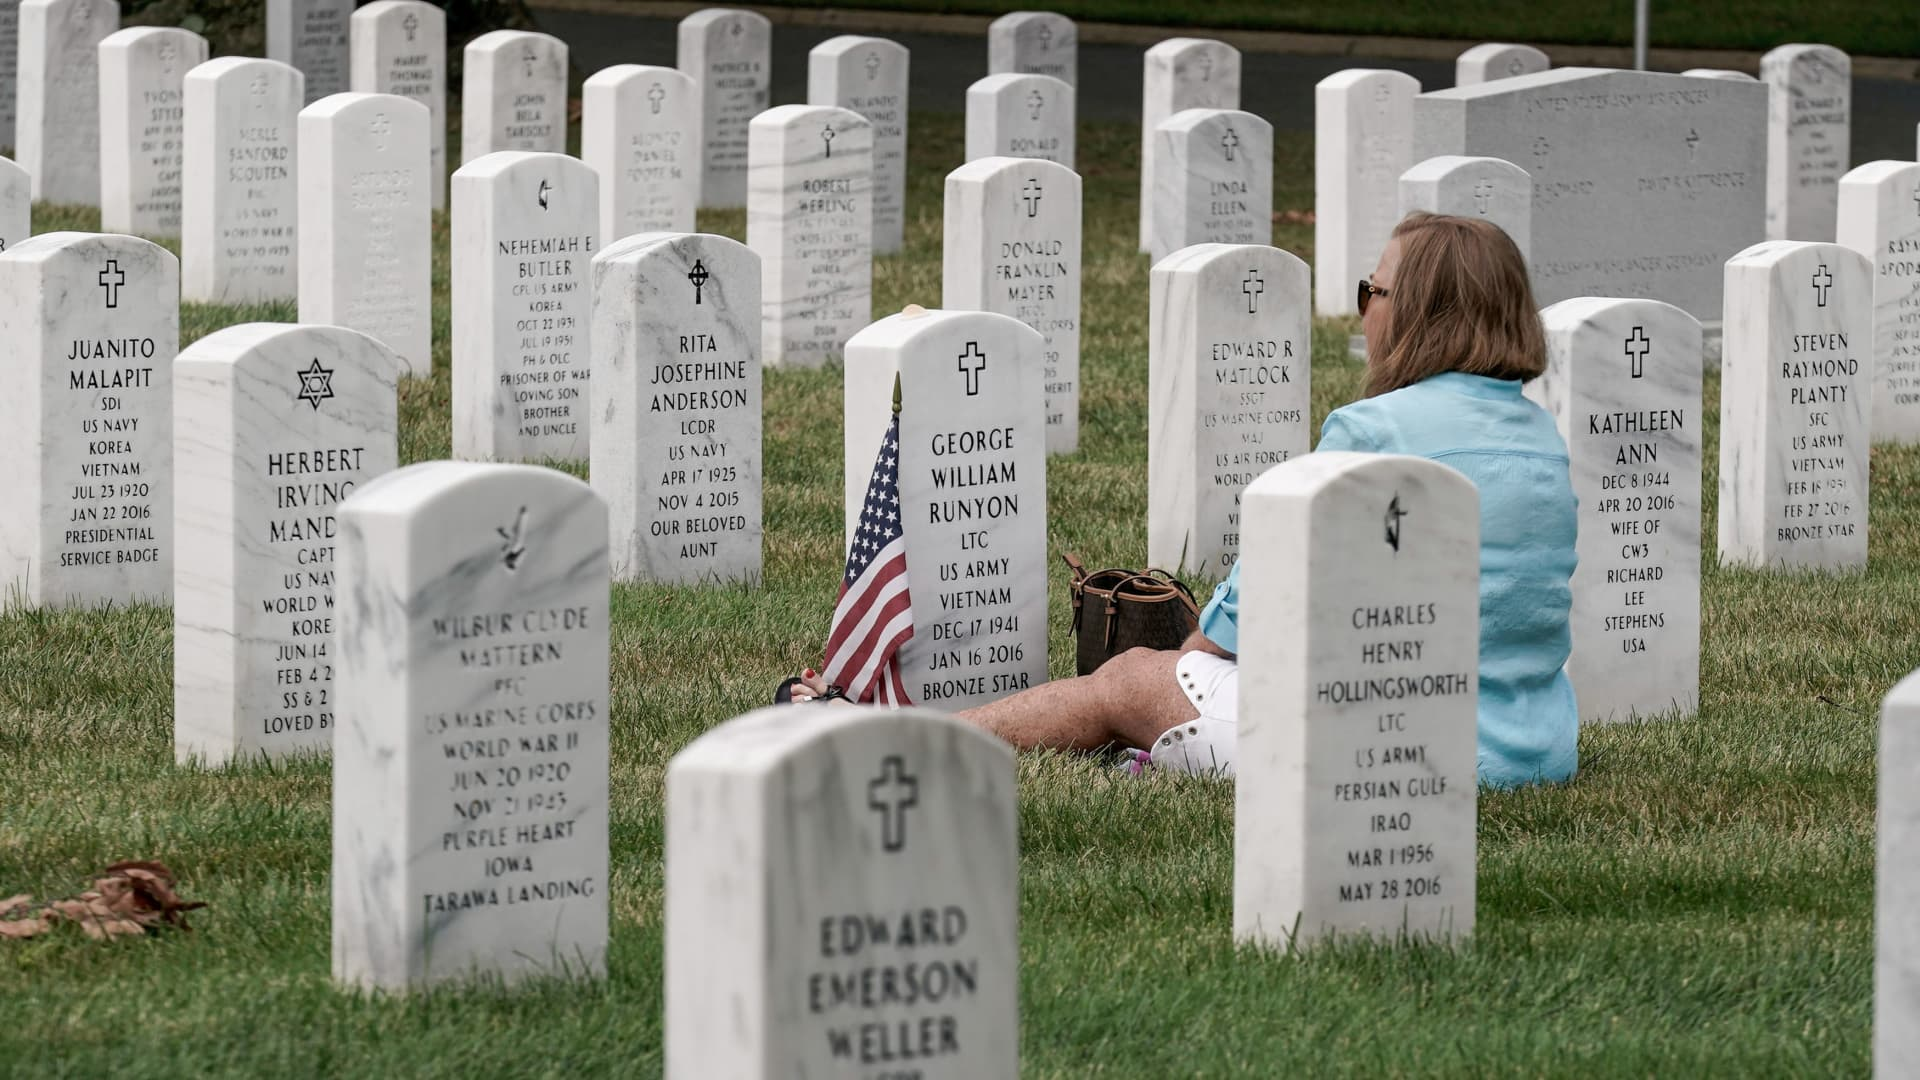 Jan Runyon visits her husband George William Runyon's grave site in Section 60 at Arlington National Cemetery in Arlington, Virginia, U.S., August 15, 2021 on the day Taliban insurgents entered Afghanistan's capital Kabul.